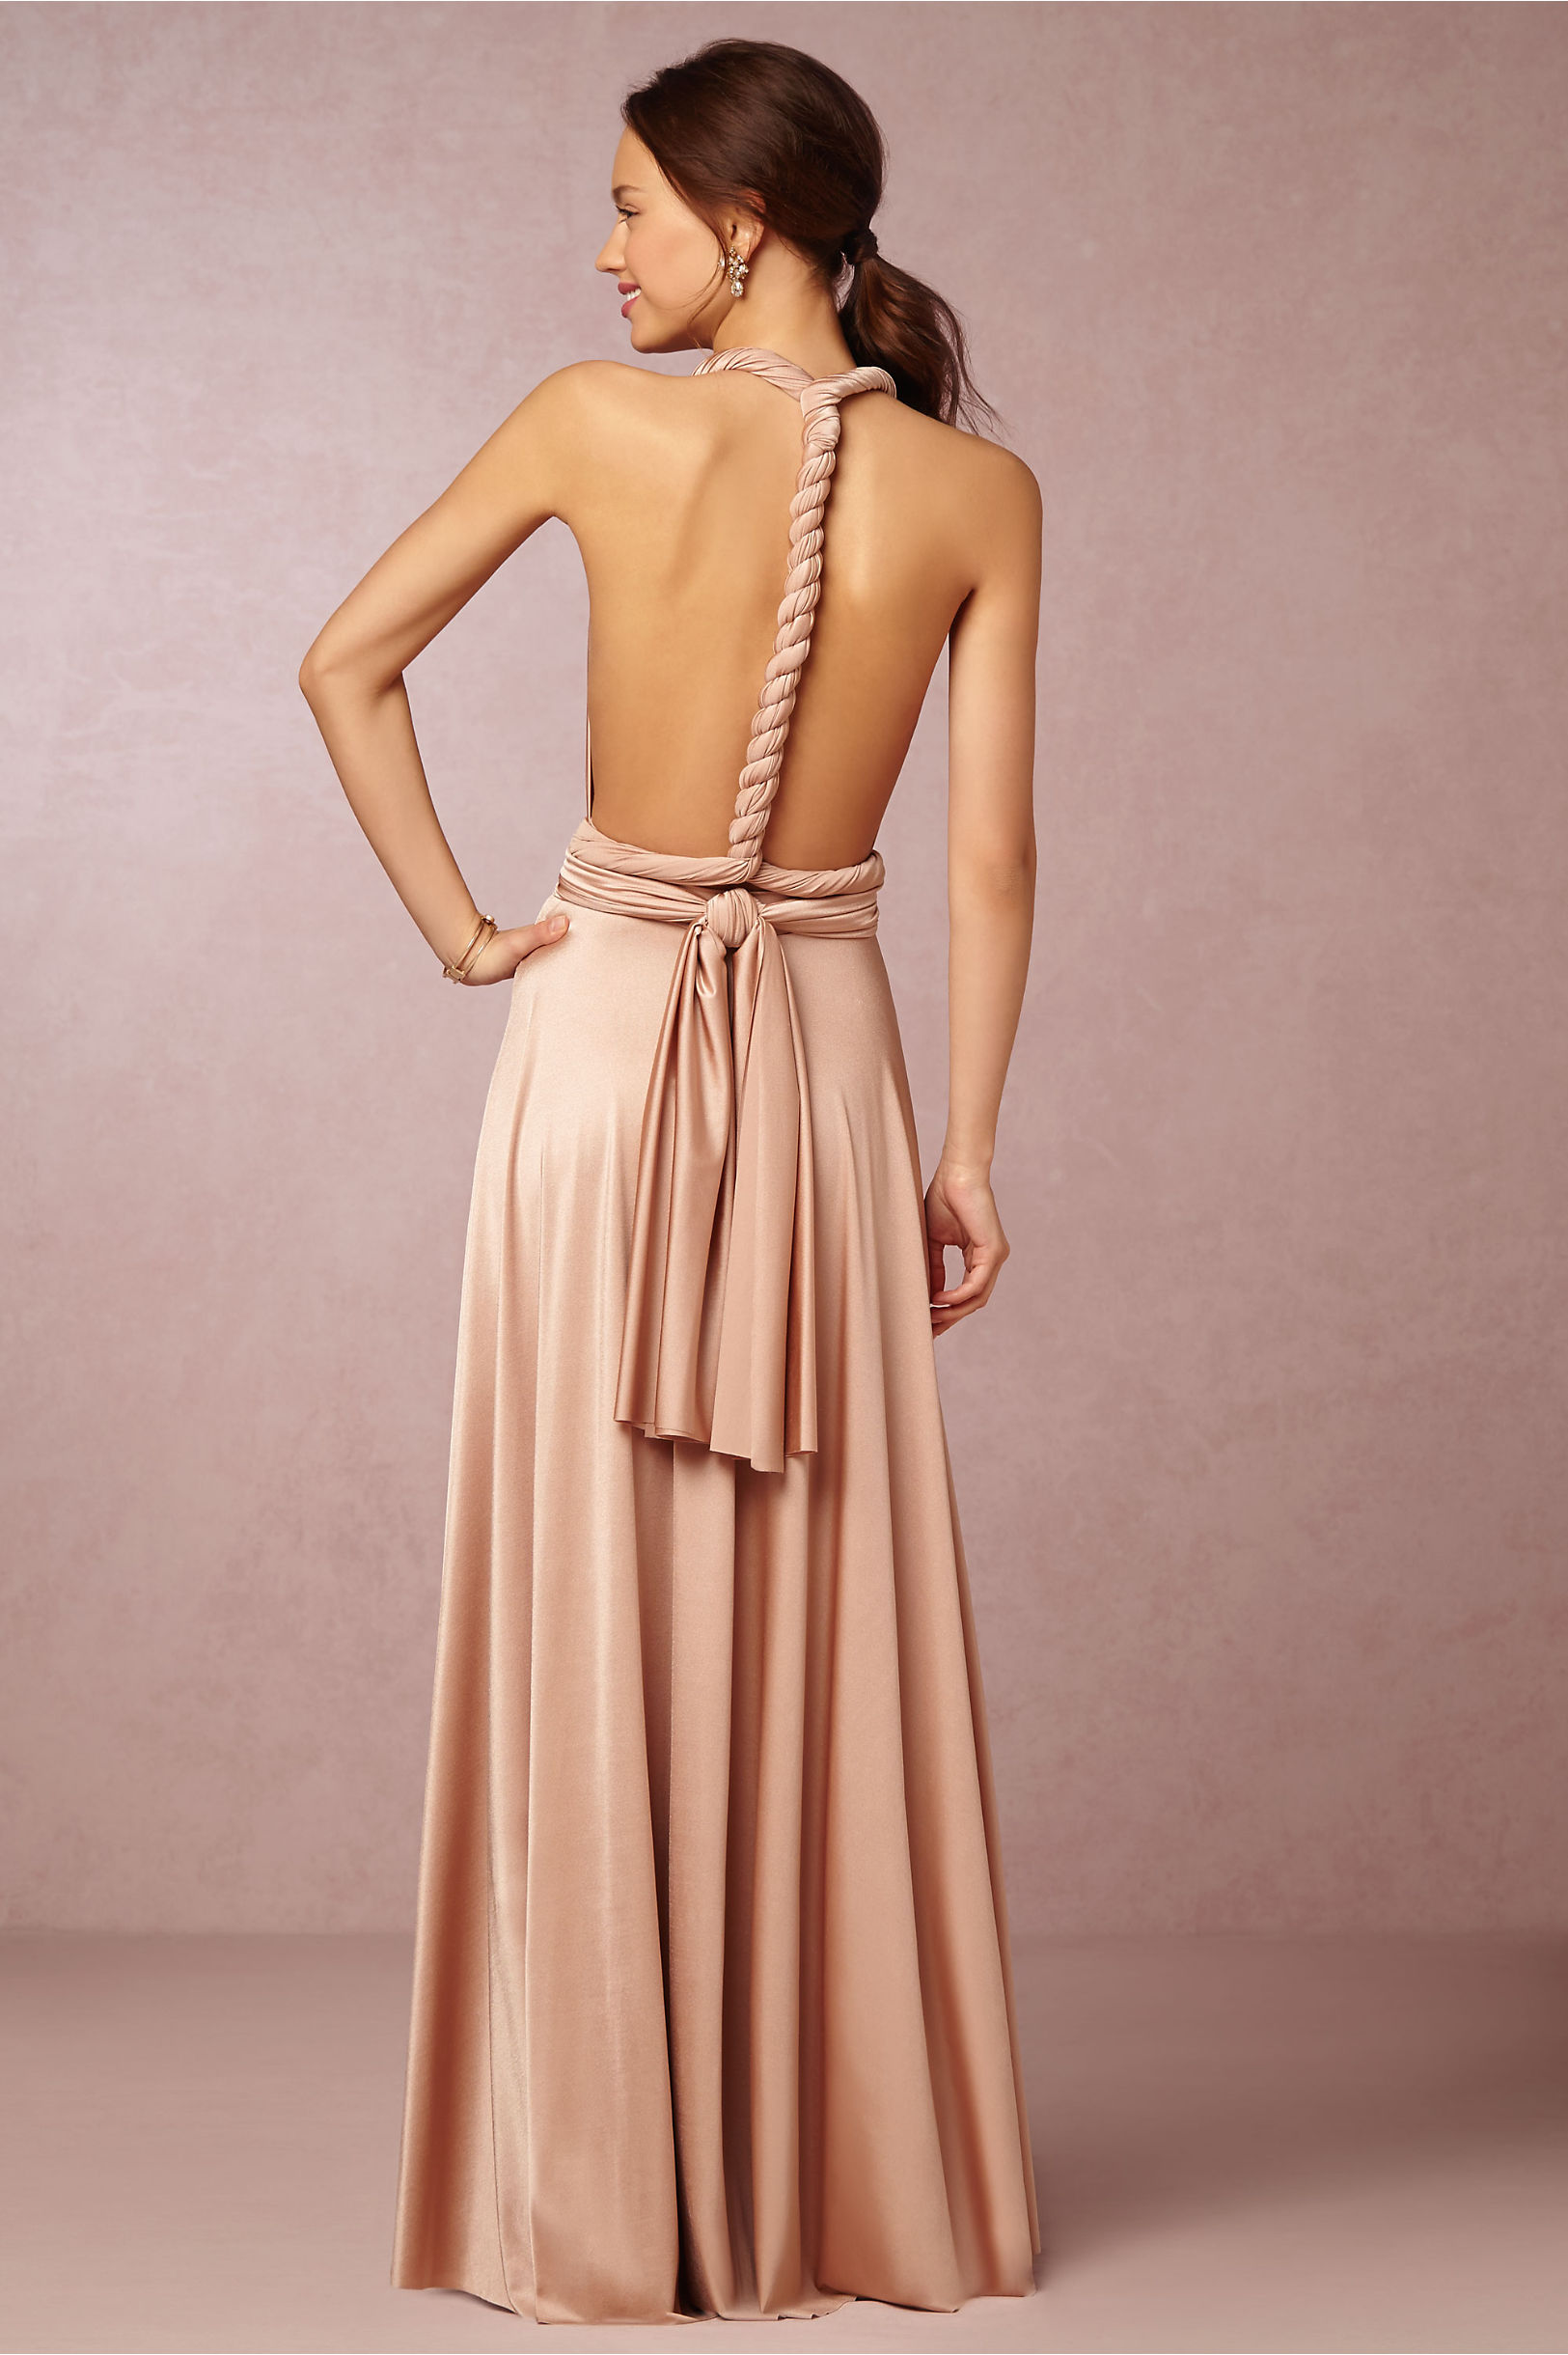 Ginger Convertible Maxi Dress in Sale